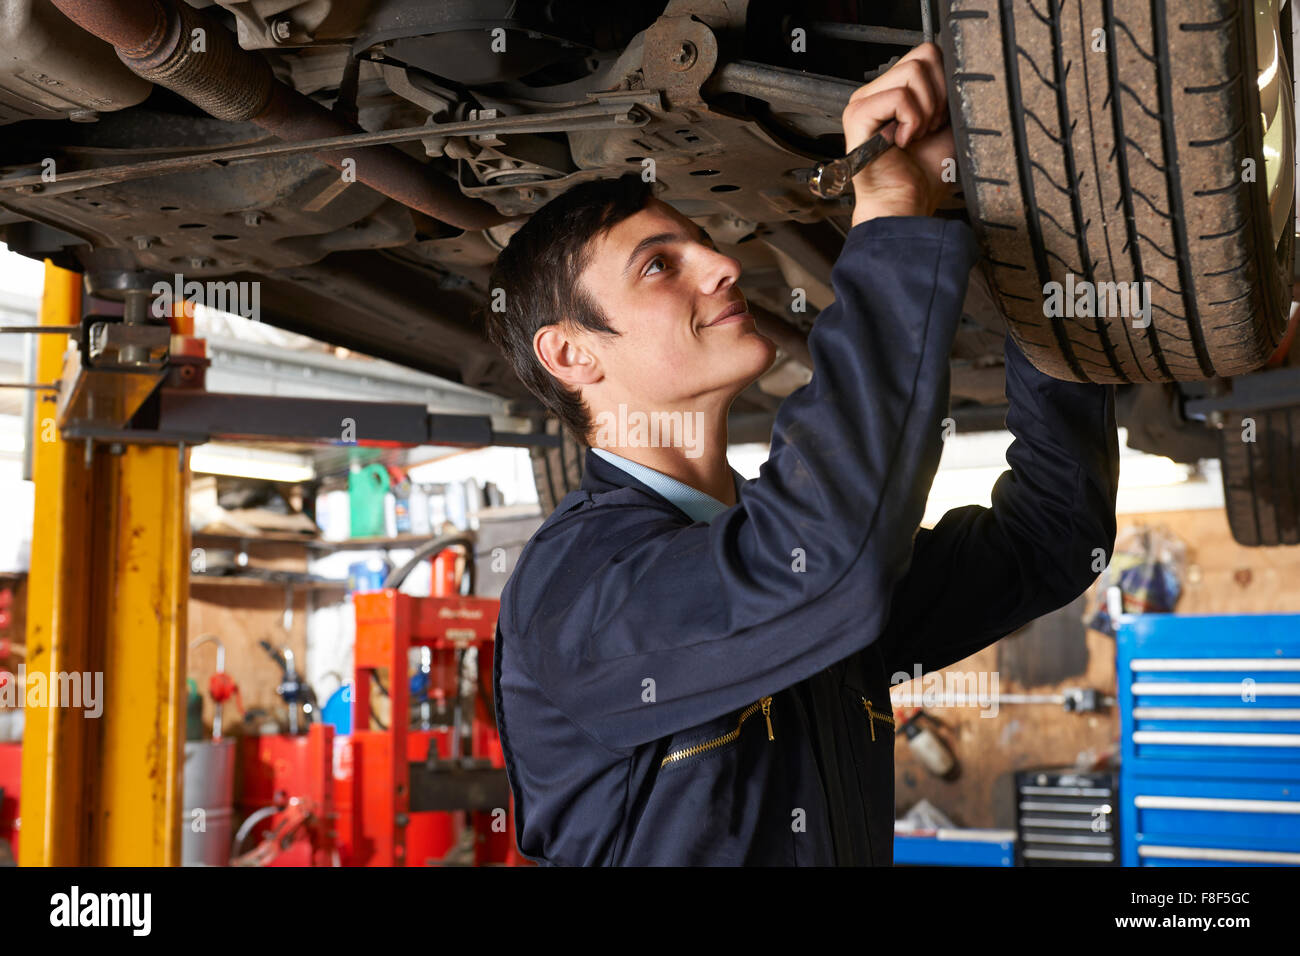 Trainee Mechanic Working Under Car - Stock Image